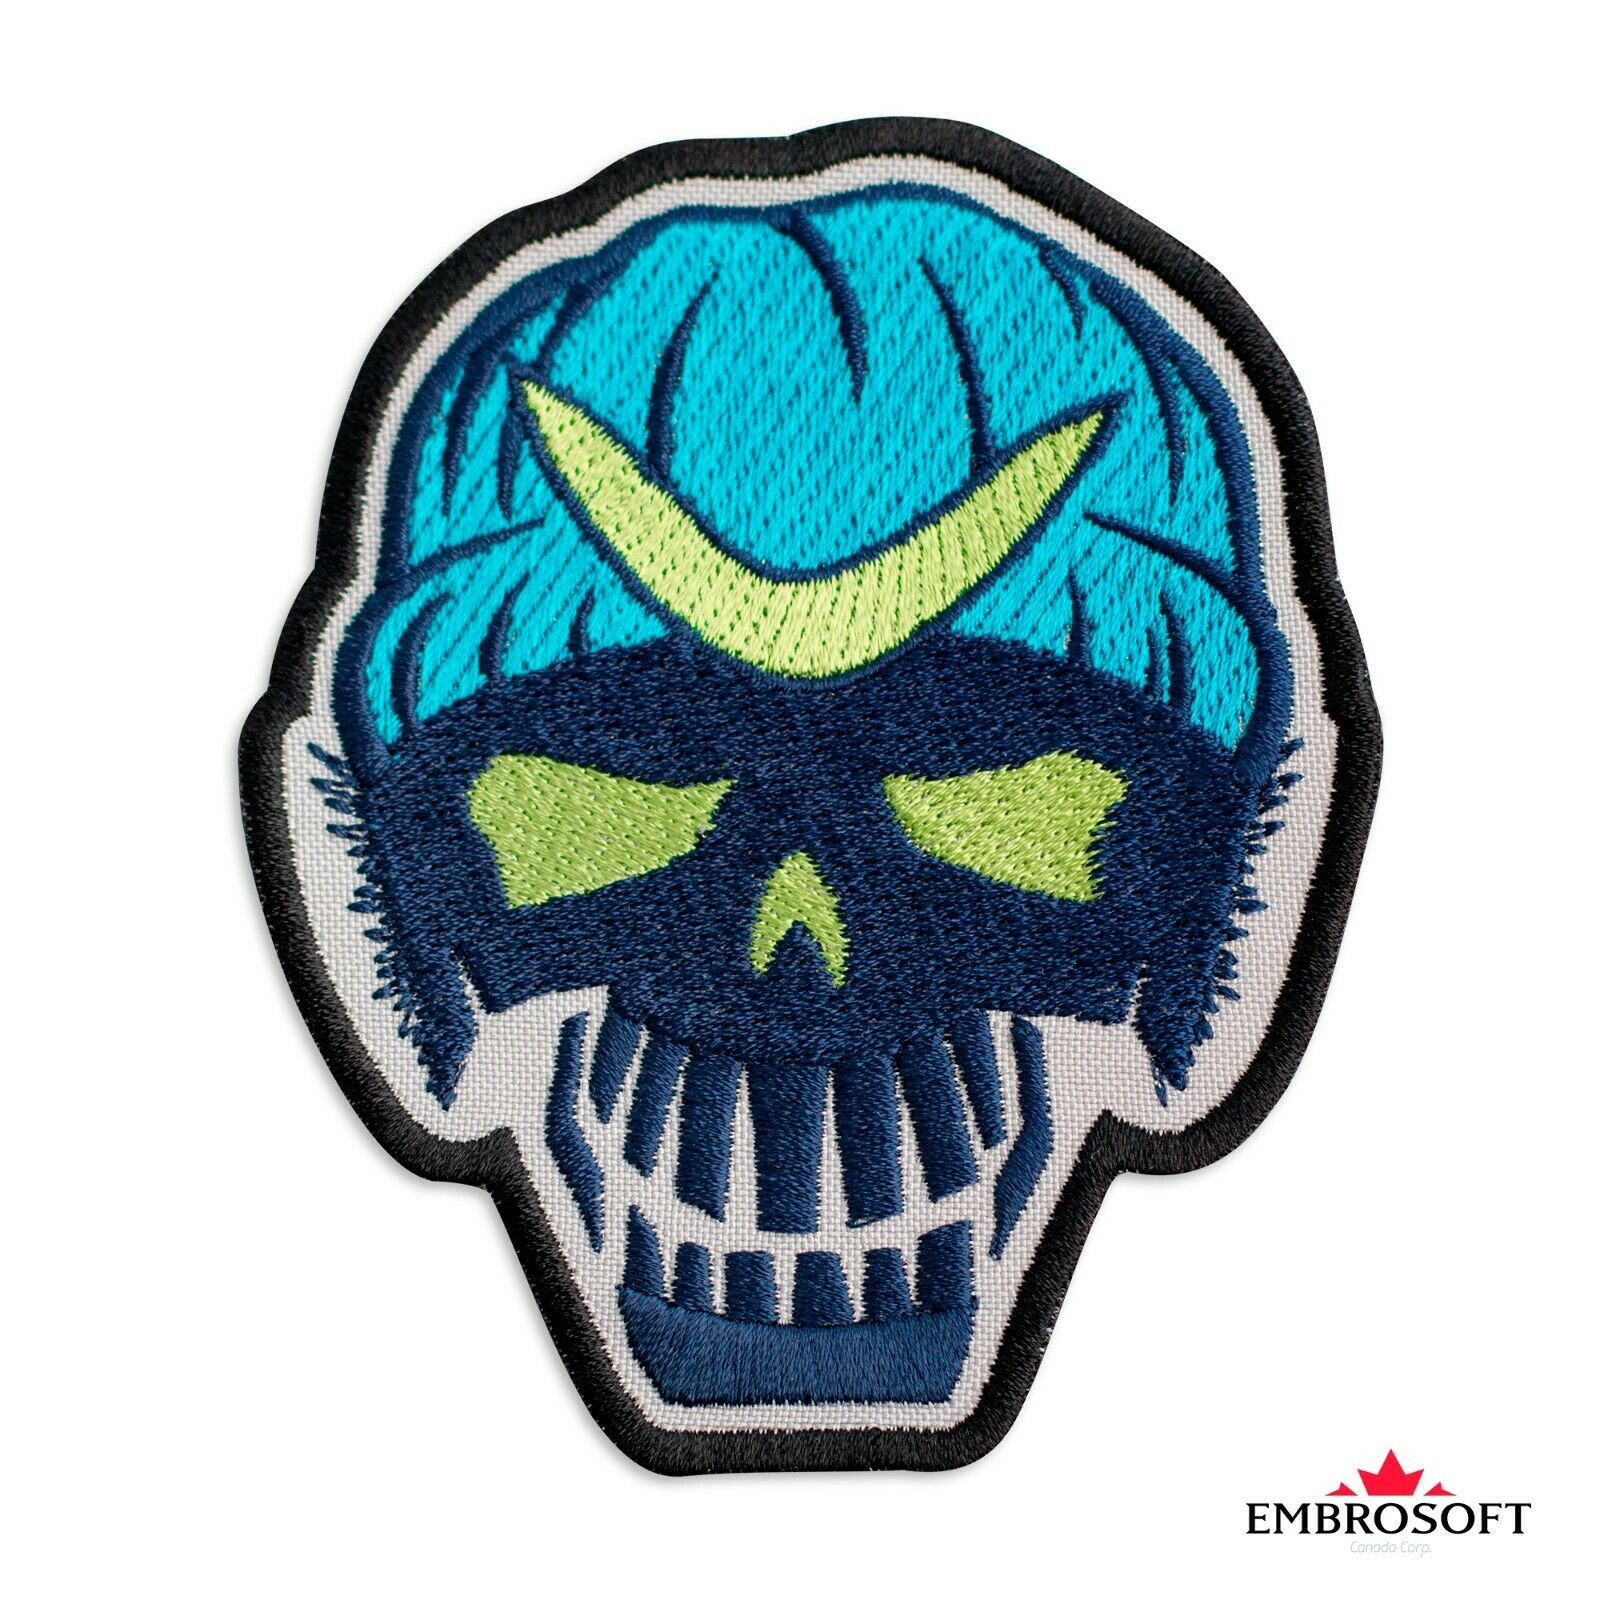 Suicide Squad HARLEY QUEEN logo embroidered patch IRON ON 3.8x3.9 inches